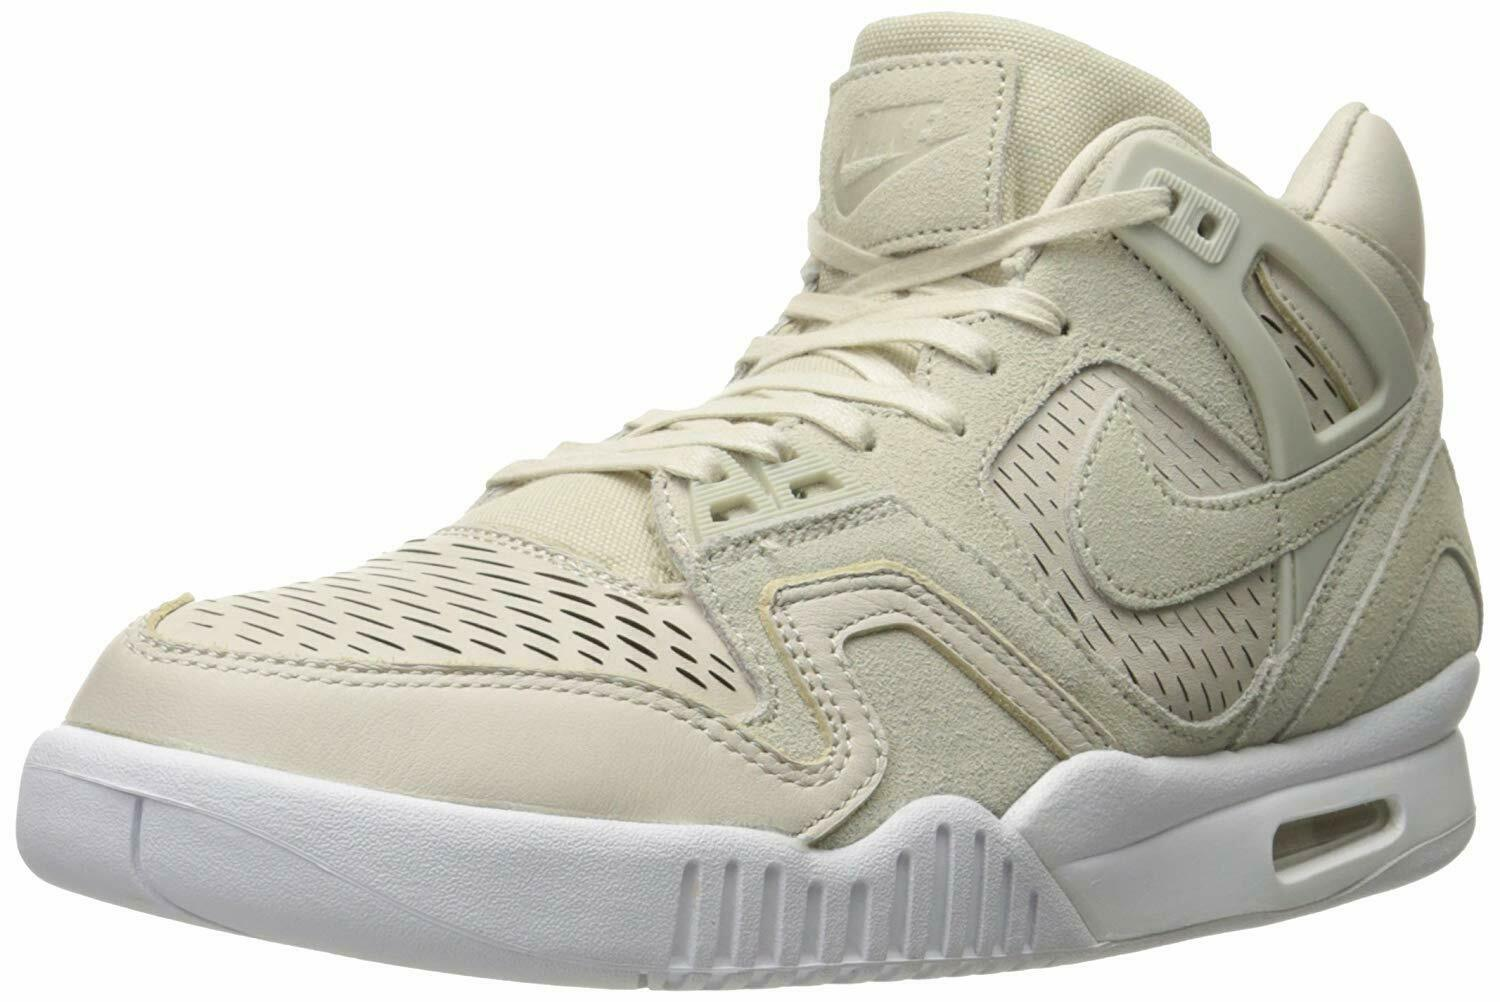 Nike Men's Air Tech Tech Tech Challenge II Laser Tennis shoes Birch White Size 8.0M 35b901